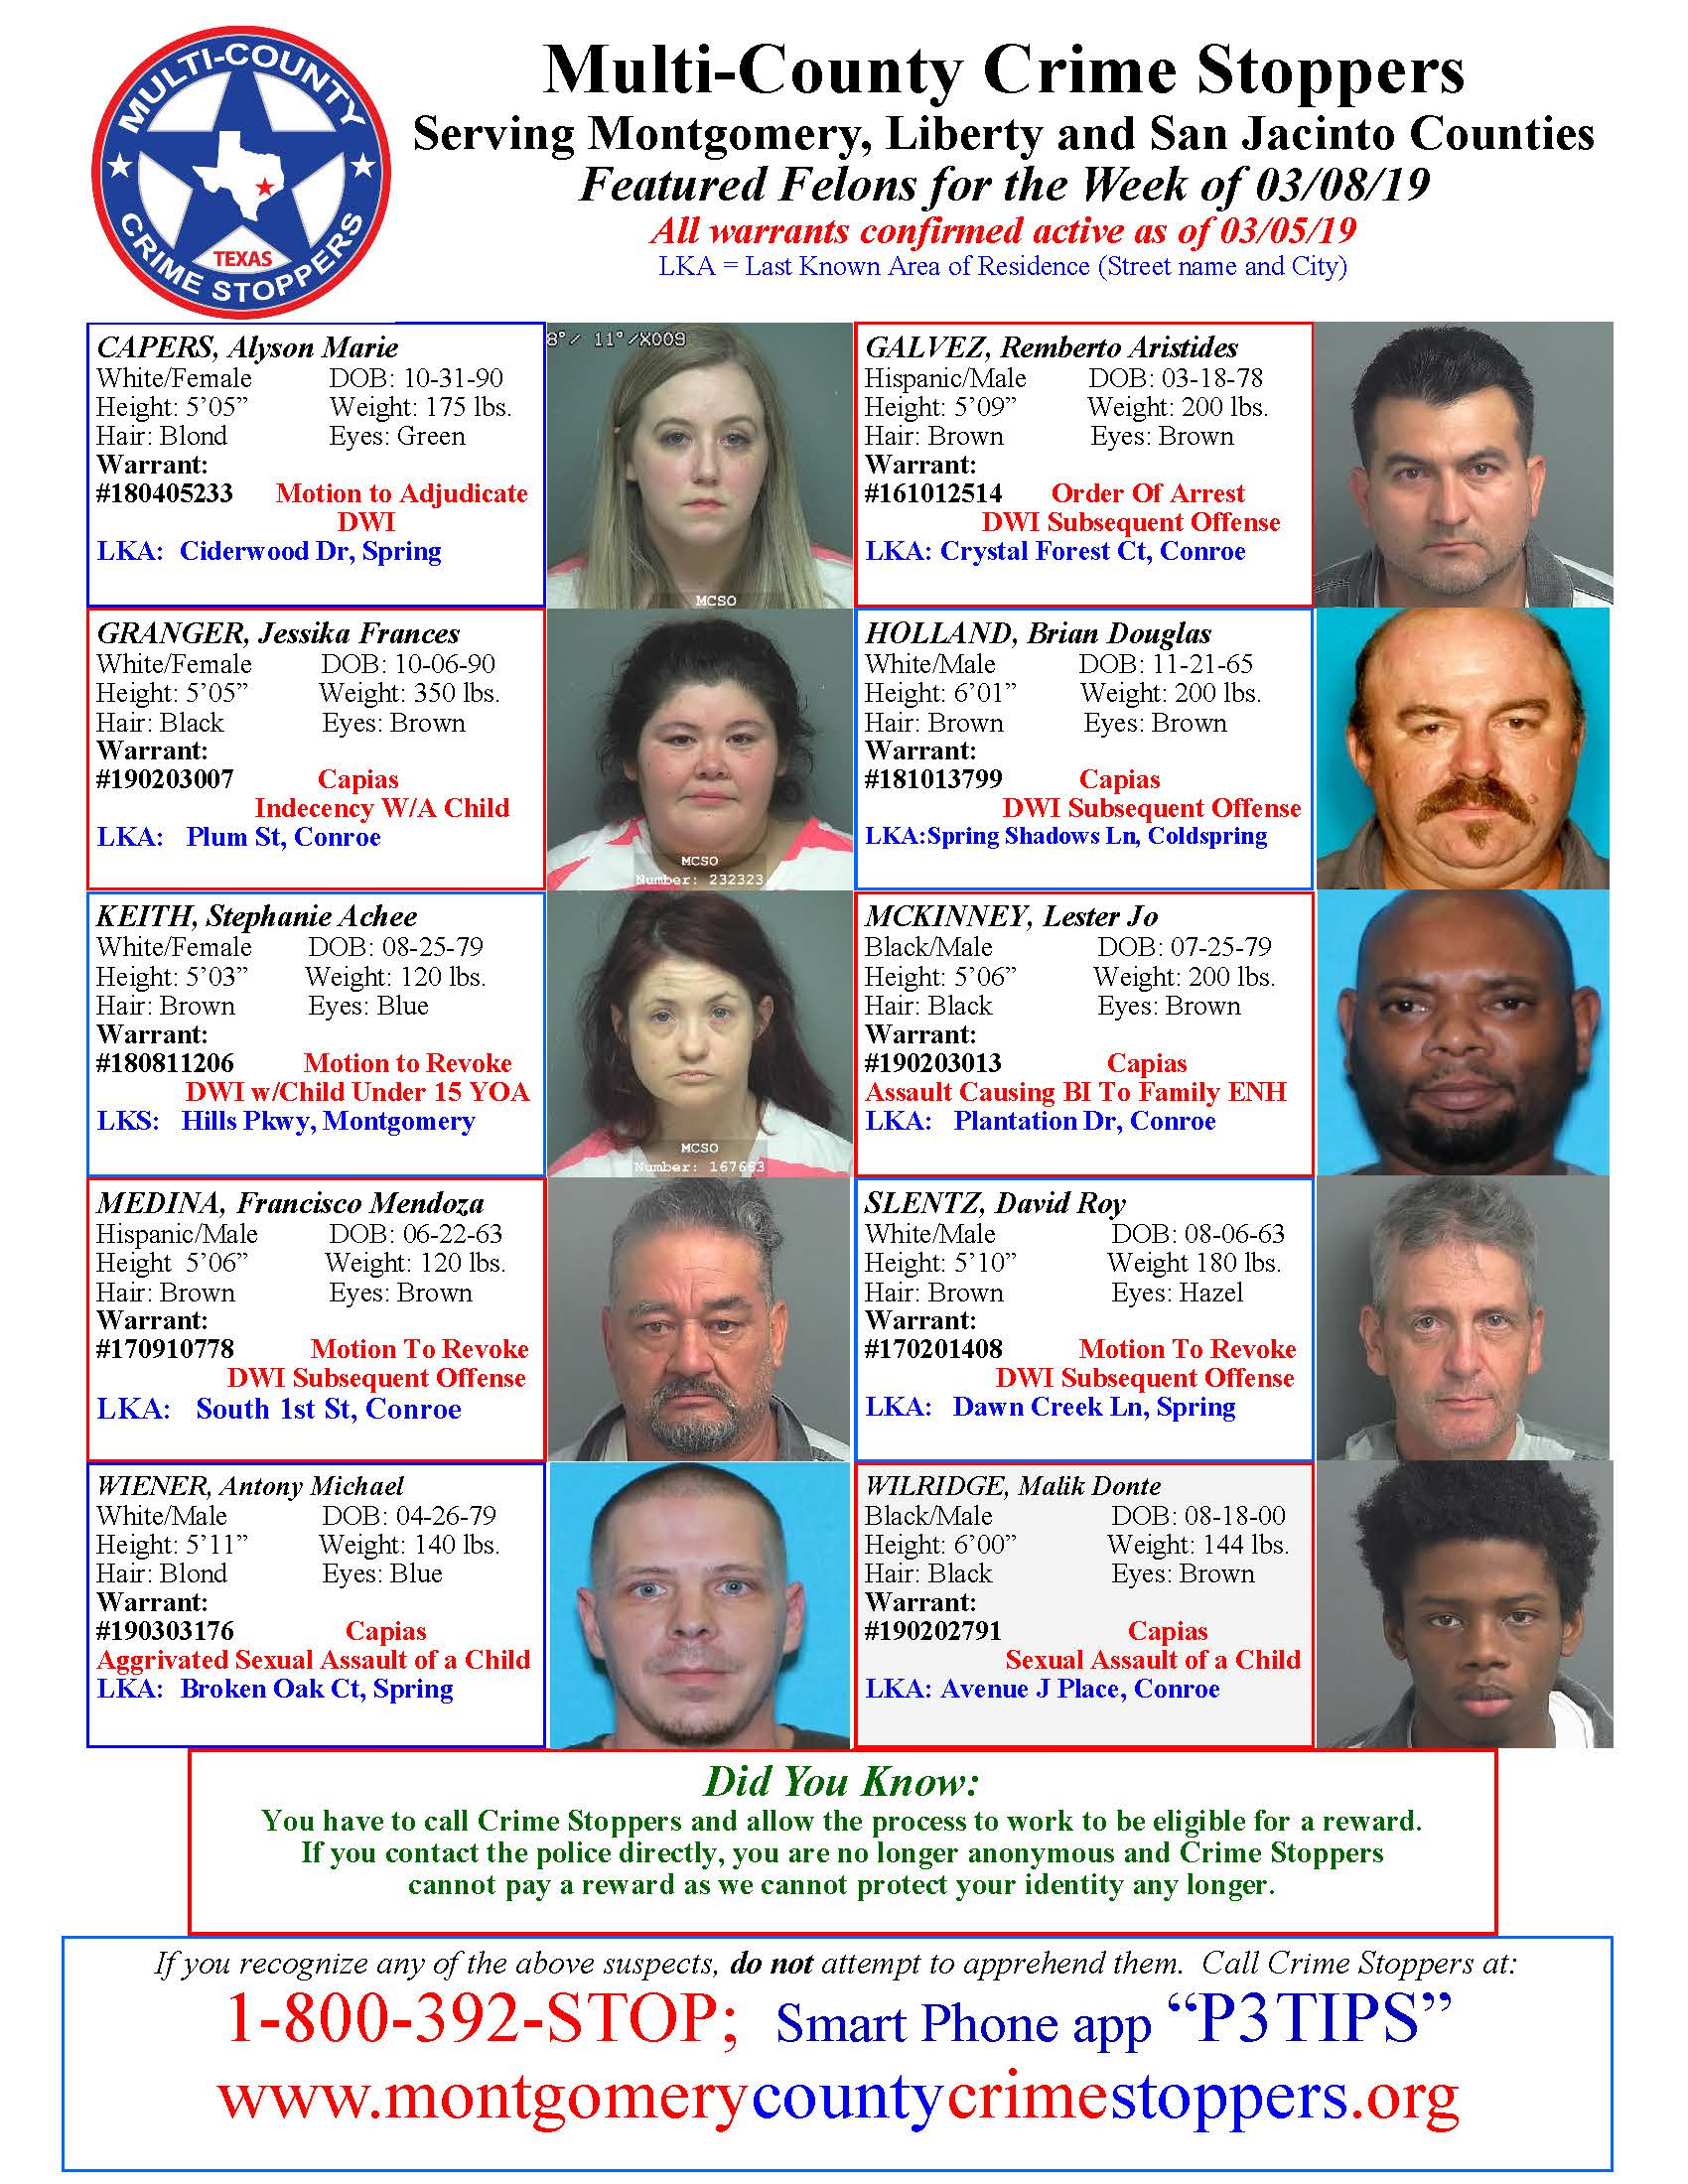 CRIME STOPPERS FEATURED FELONS 03.08.19